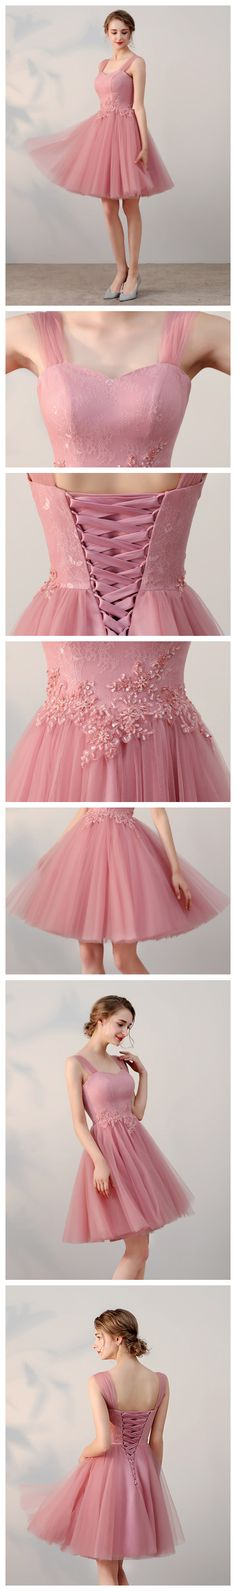 CHIC A-LINE HOMECOMING DRESS,TULLE STRAPS SHORT PROM DRESS PINK SIMPLE LACE APPLIQUE HOMECOMING DRESS AM238